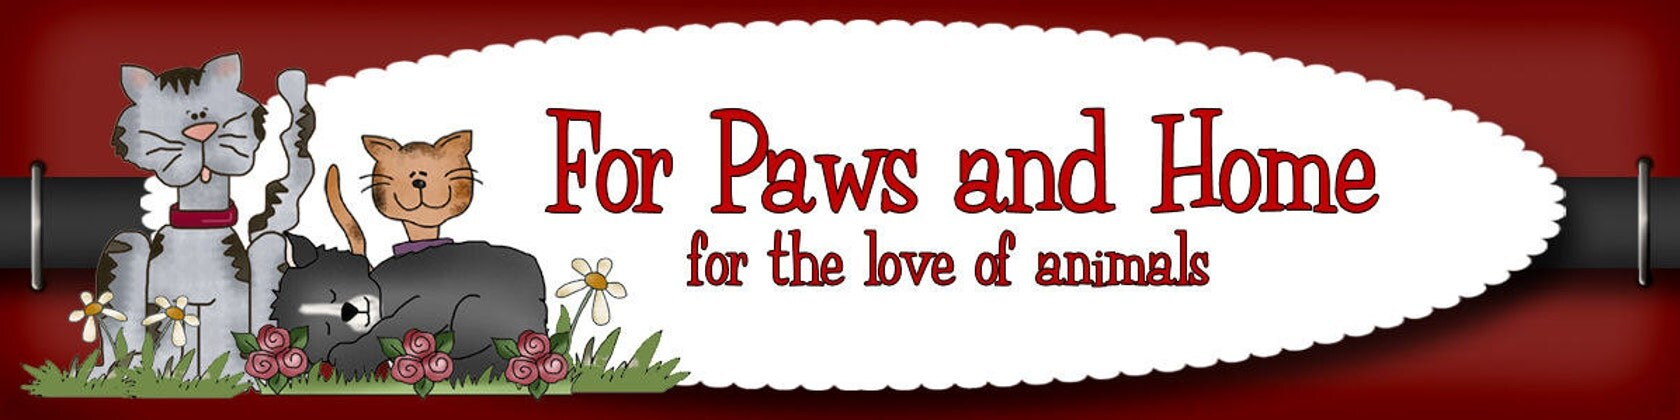 For Paws and Home Handmade Pet supplies for the Love of Animals